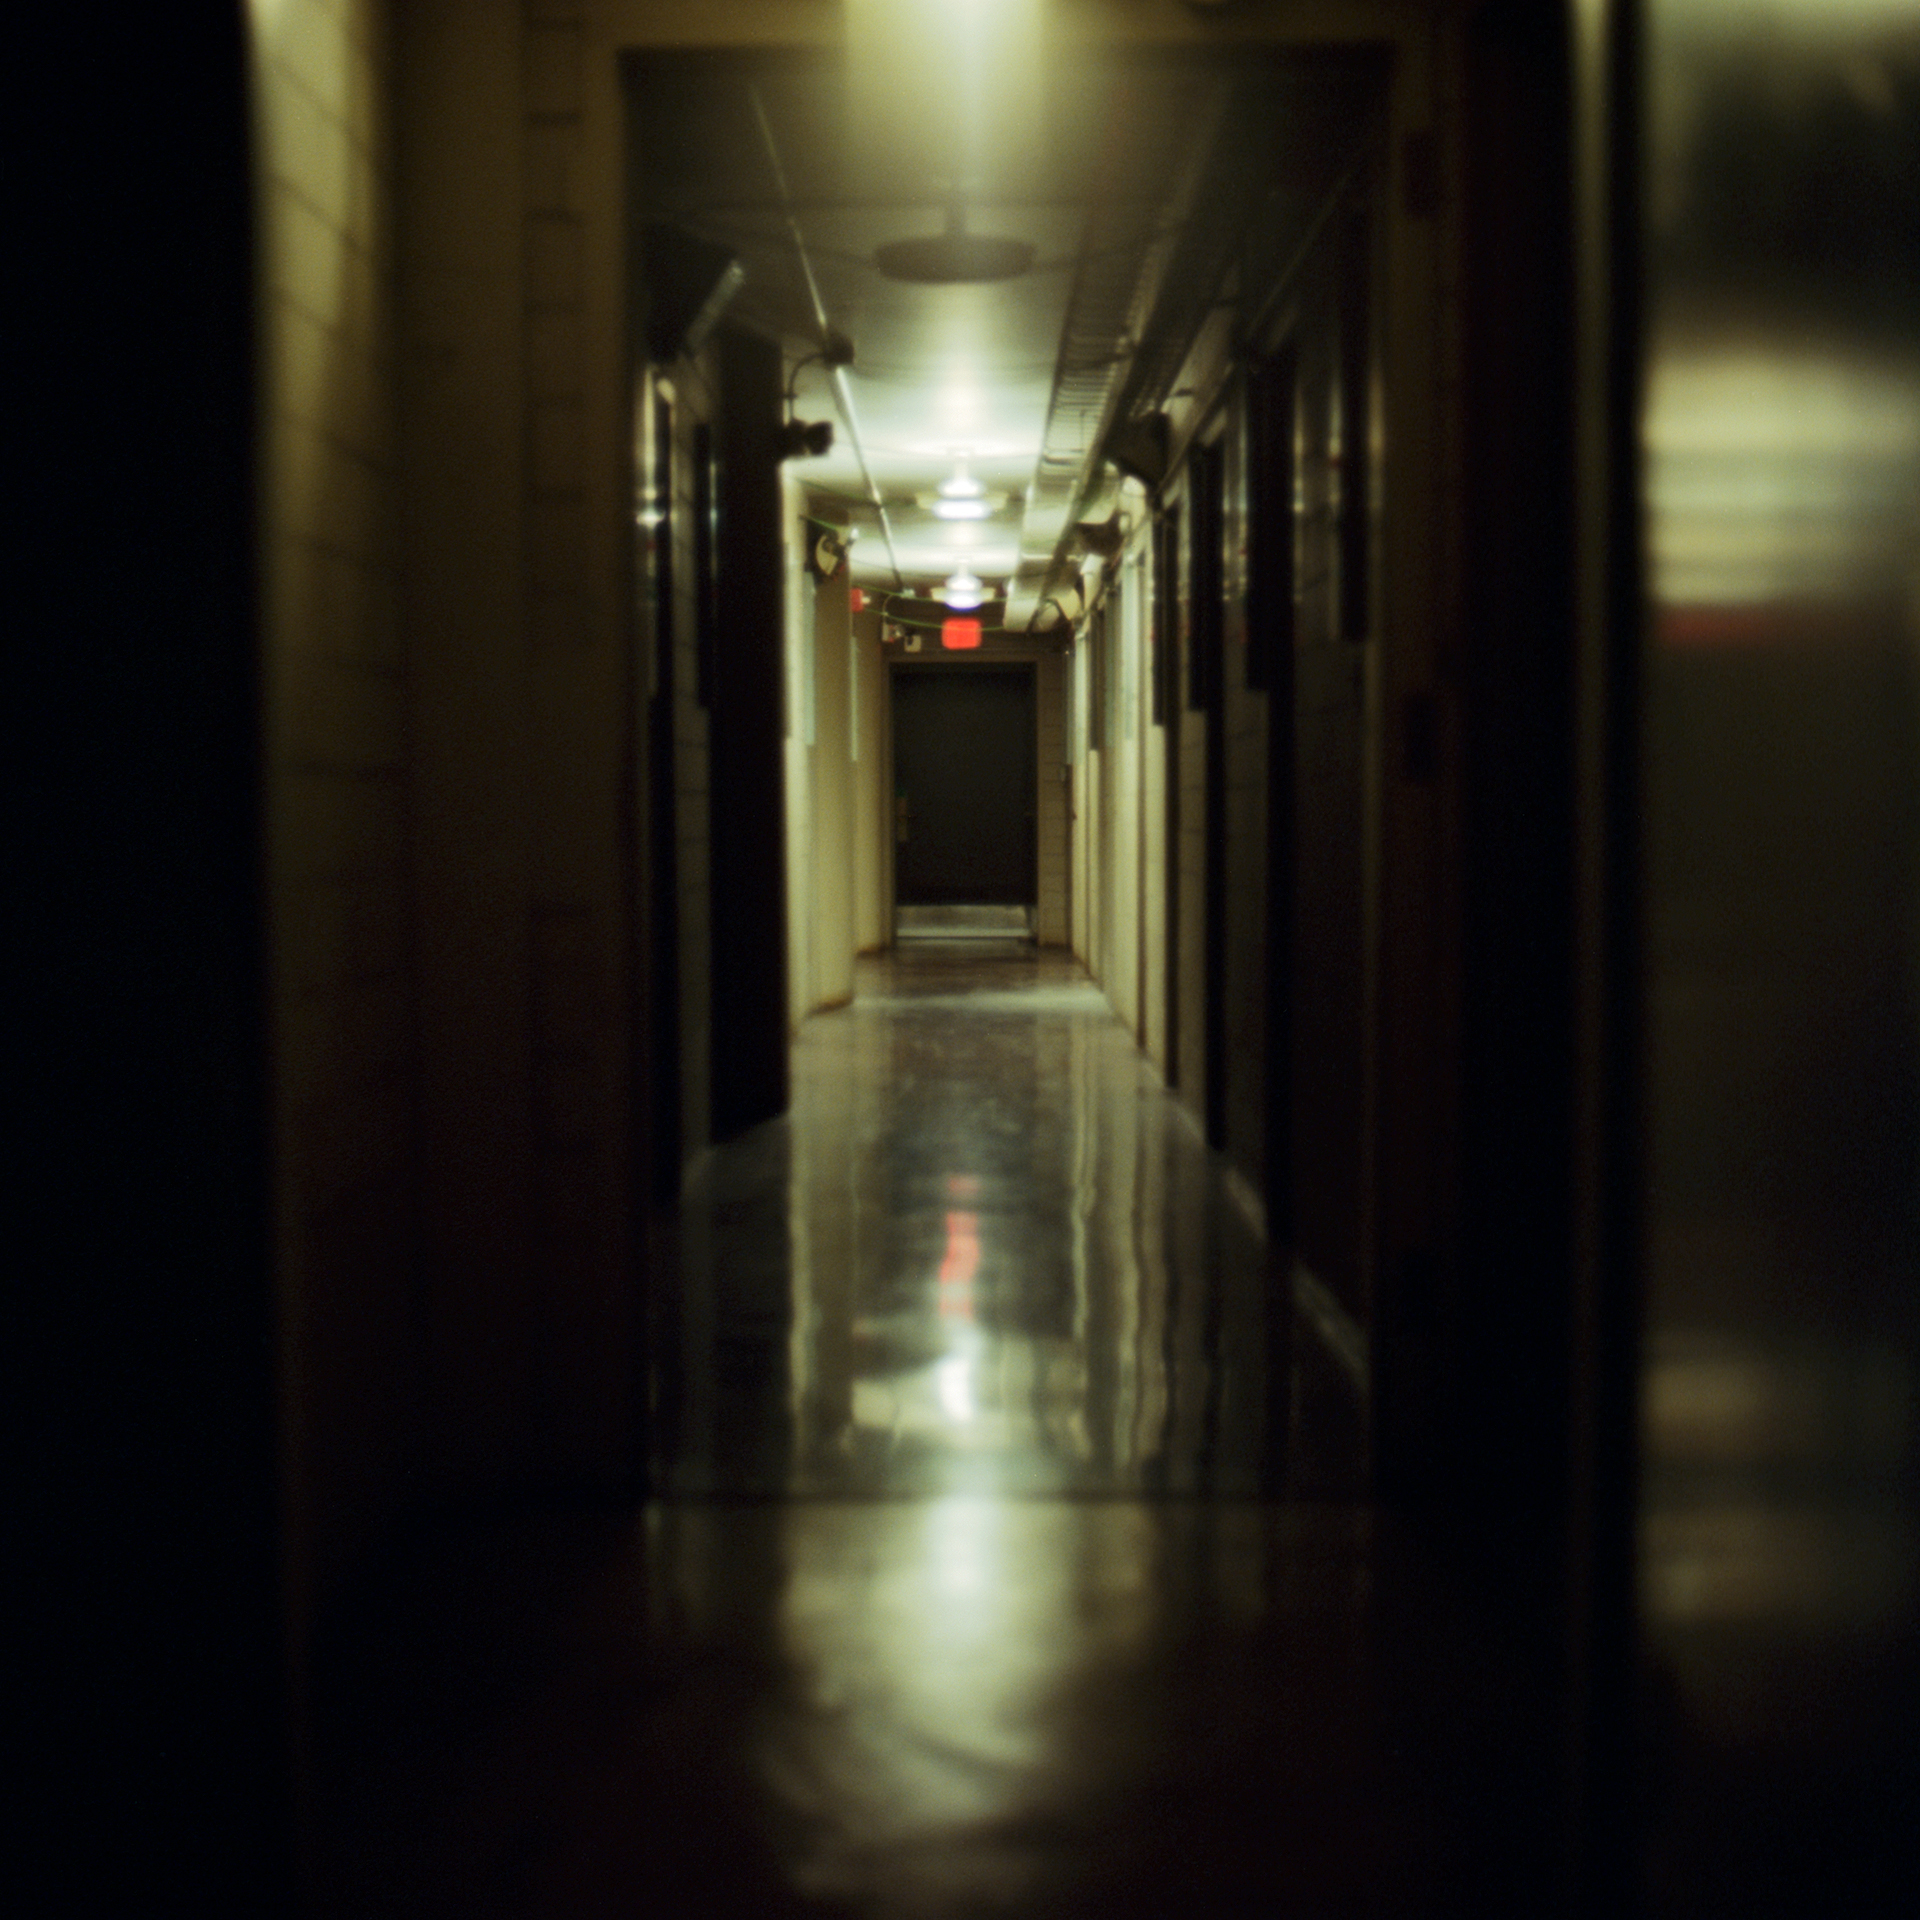 Hallway full of darkrooms at the Kodak headquarters